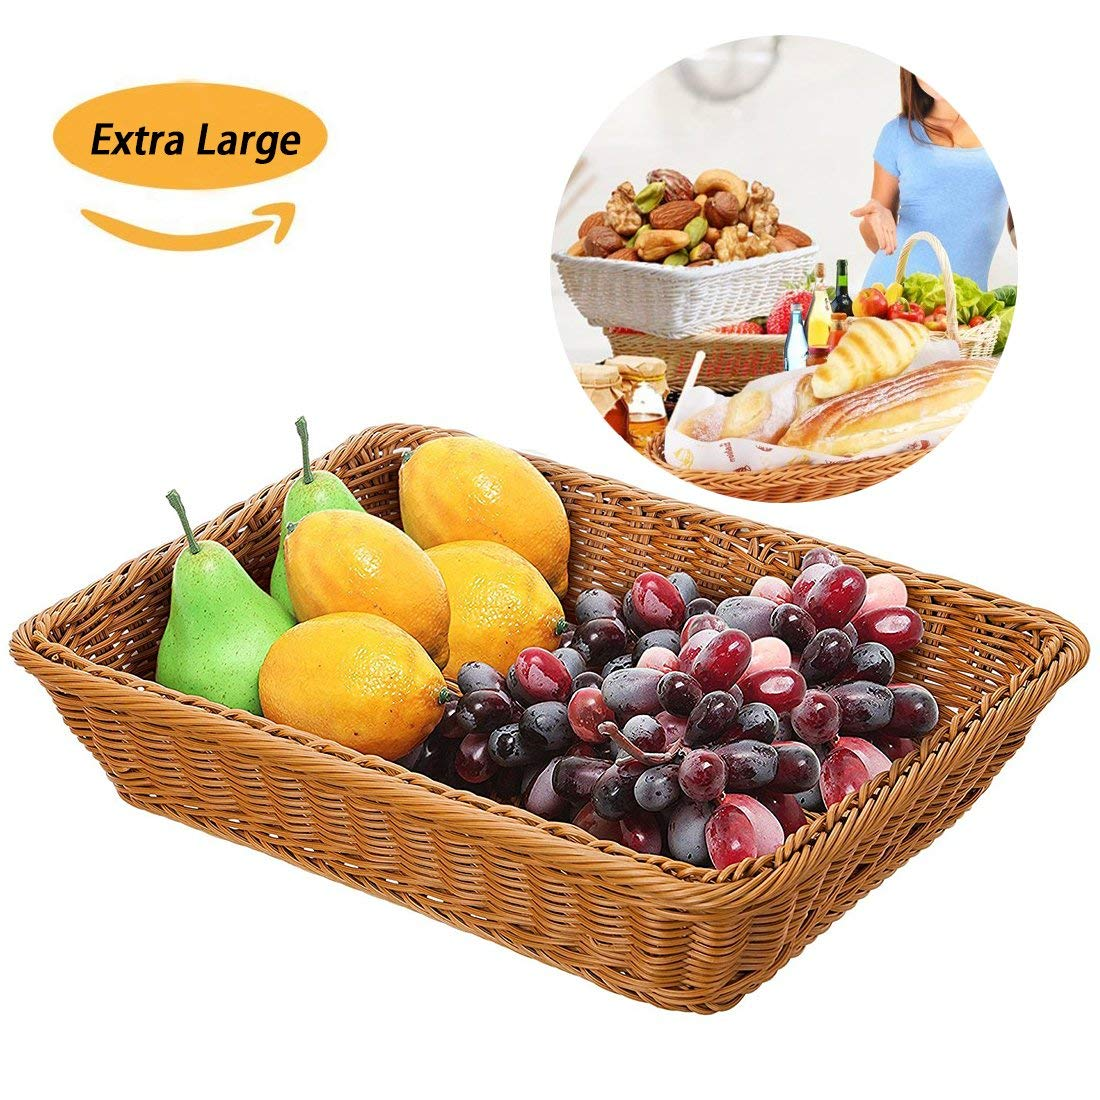 """Extra Large Poly-Wicker Bread Basket Imitation Rattan Rectangle Tray for Food Serving Restaurant/Kitchen/Coffee Table Display Organizer Decoraion Baskets Fruit Snacks Container,(16"""" x 12"""" x 4"""")"""